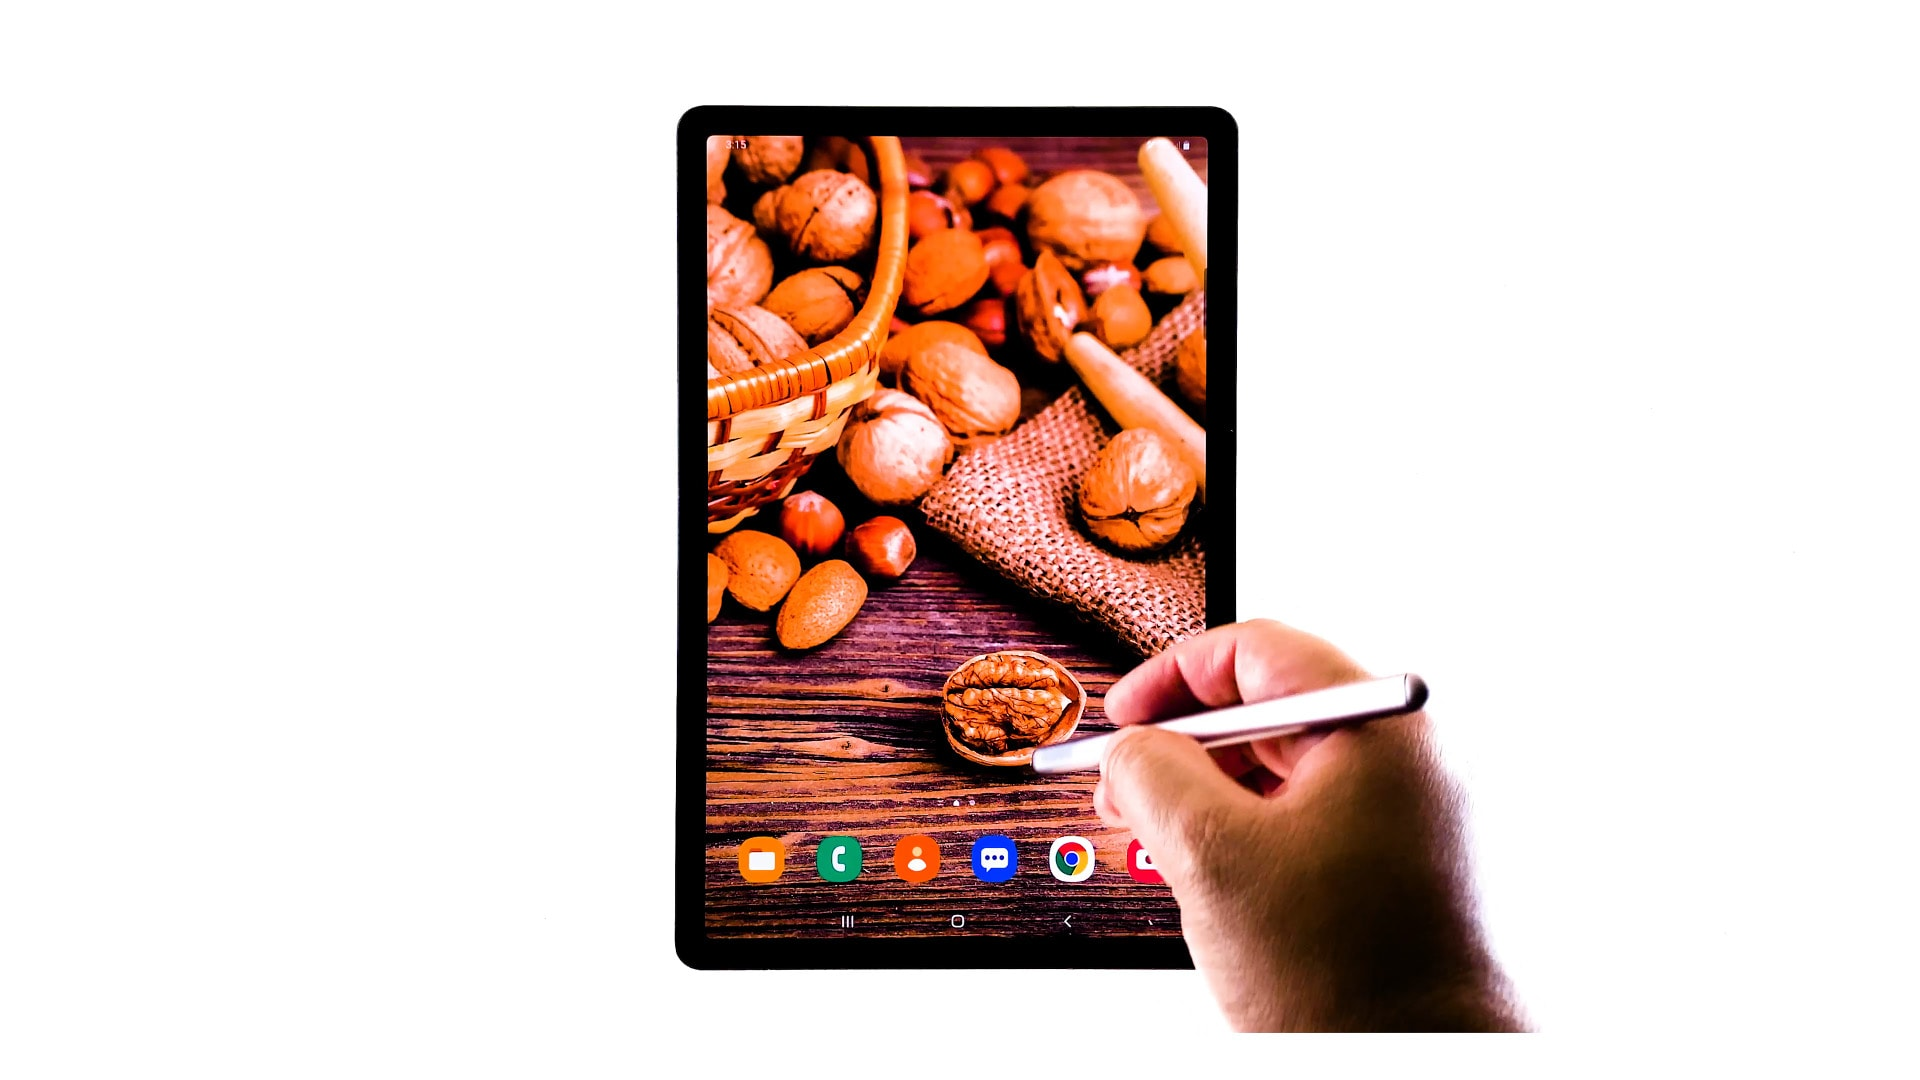 delete forget wifi network galaxy tab s6 - home screen